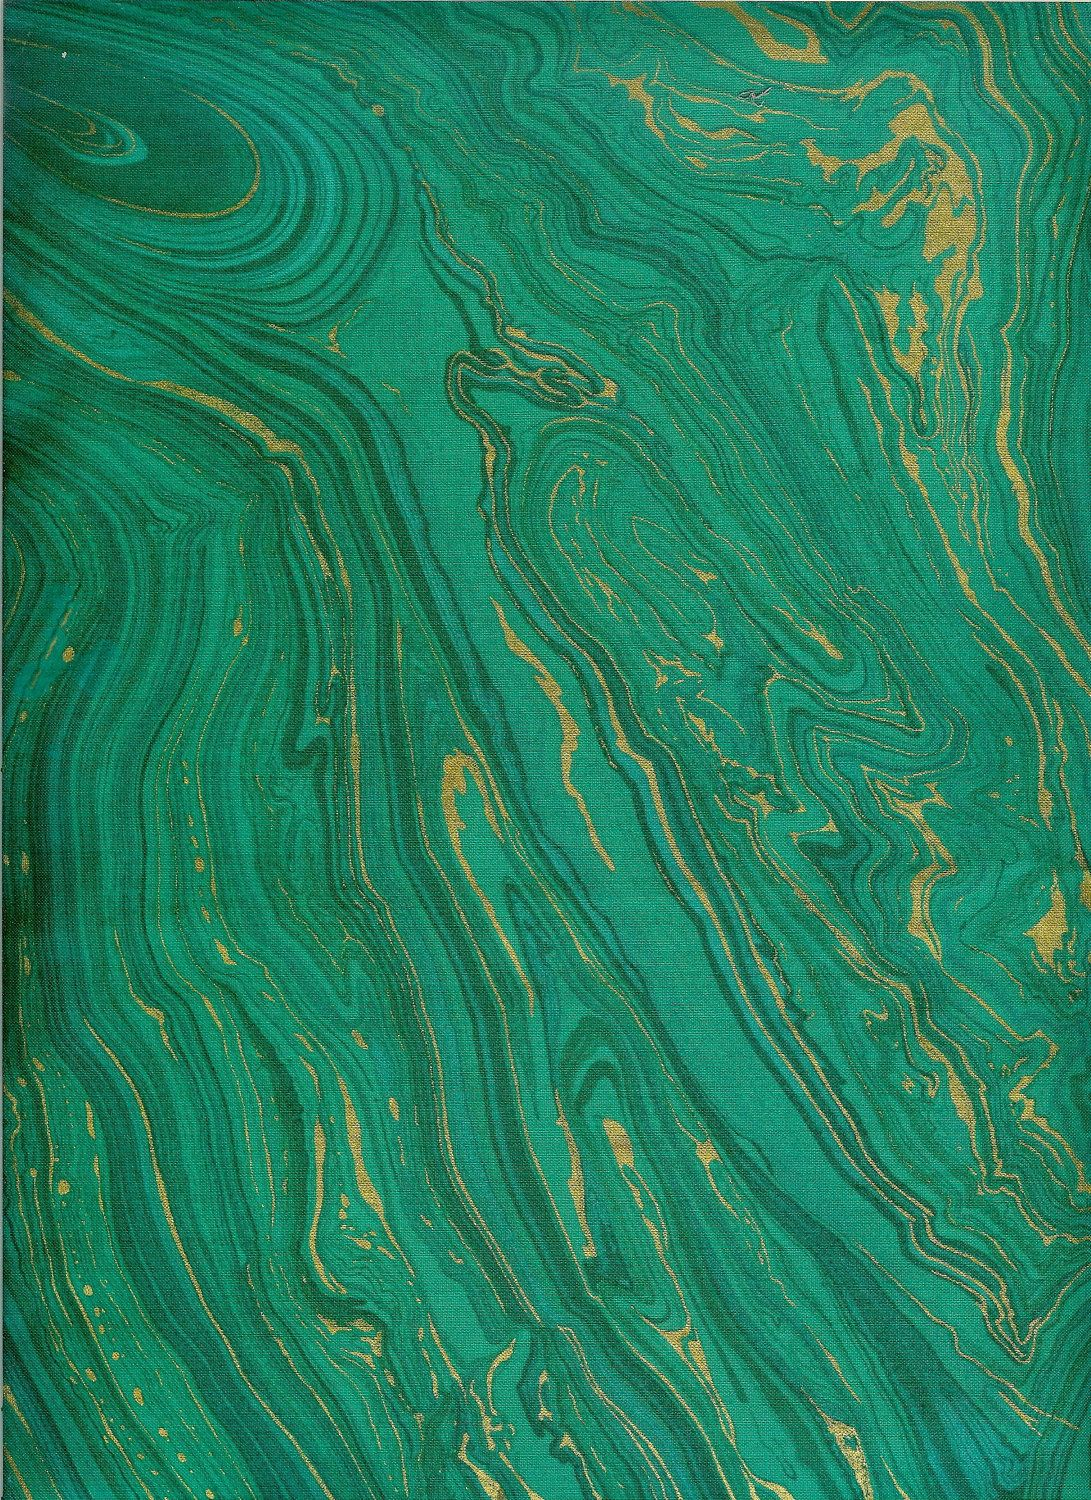 Marbled Green Gold Green Art Aesthetic Colors Green Aesthetic